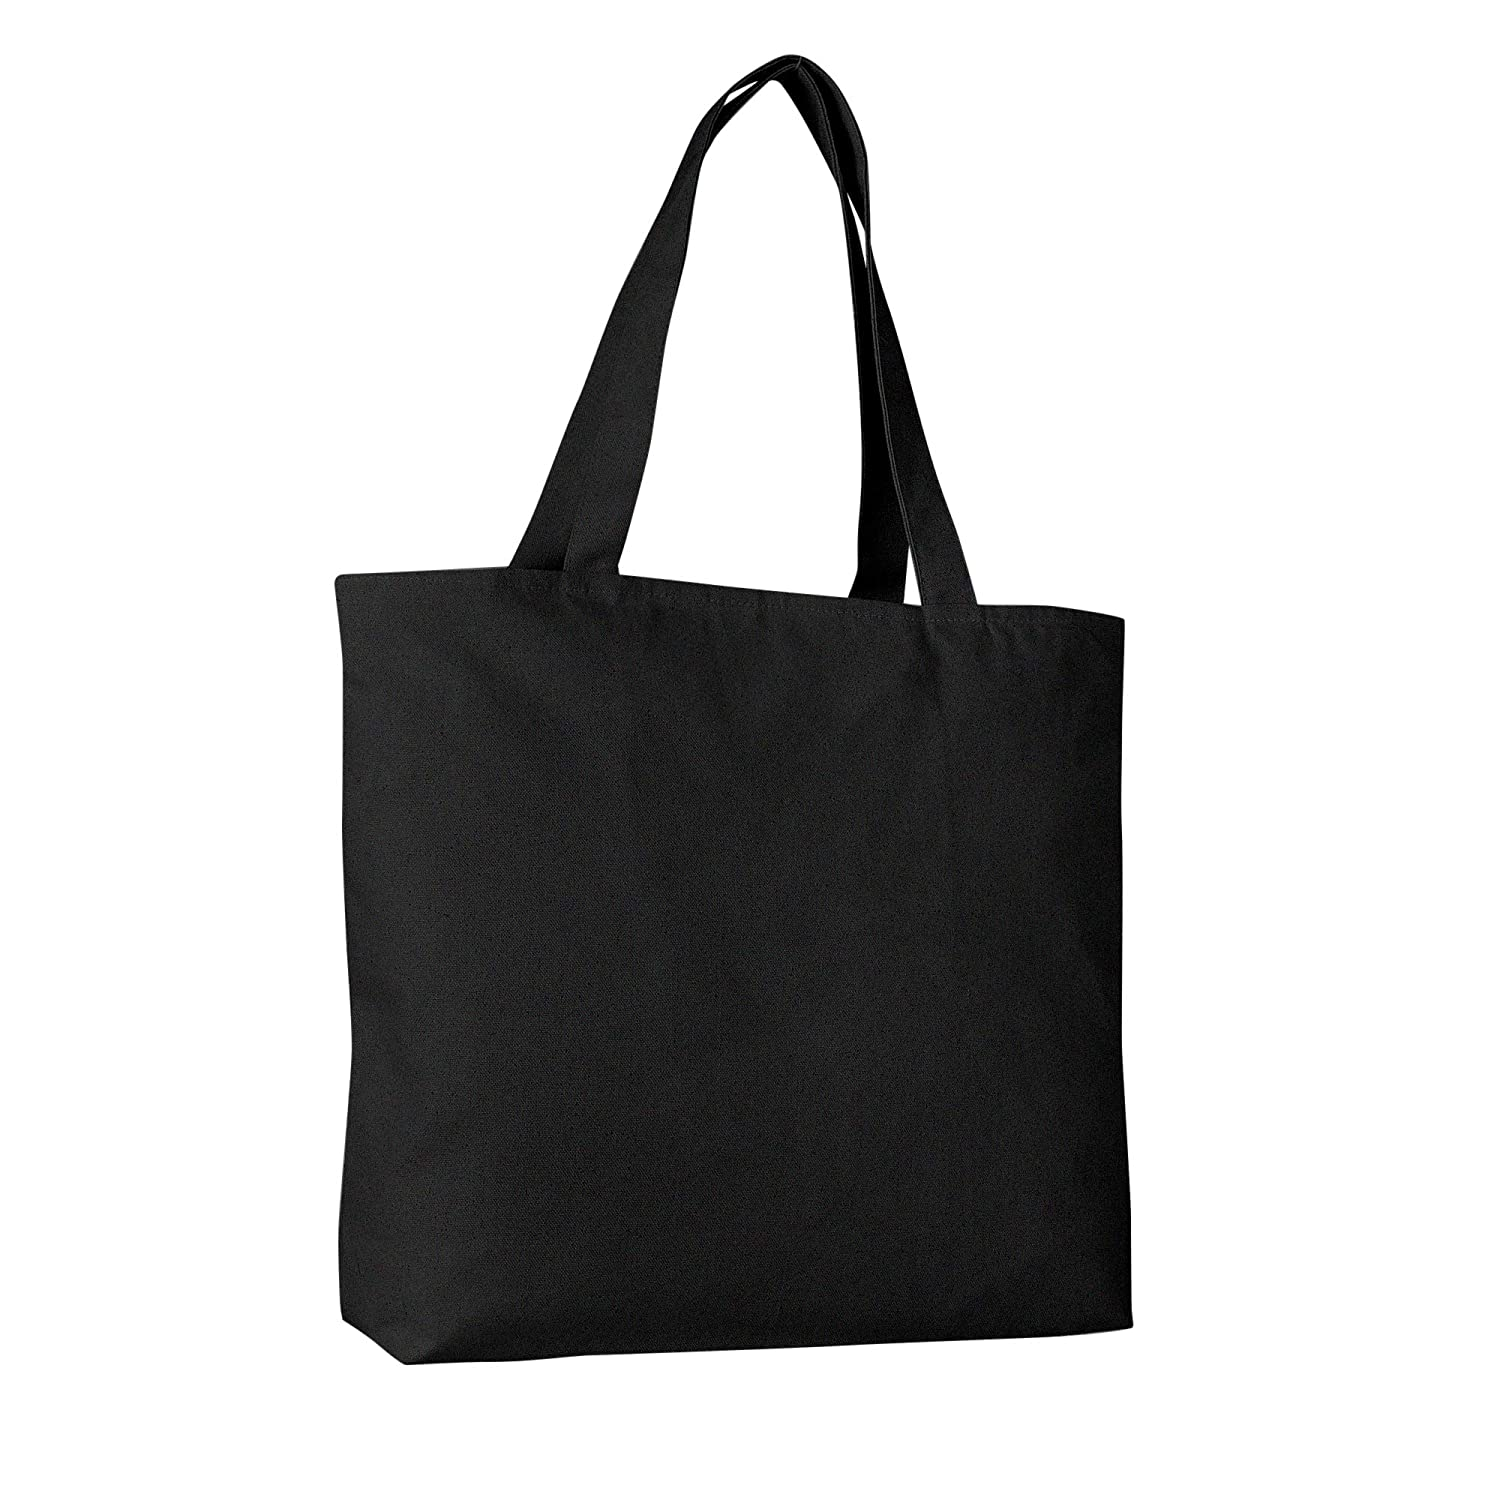 b67fe9a6dfa8 Amazon.com  Pack of 2 Heavy Duty Canvas Tote Bags with Zipper Top and  Zipper Inside Pockets  BagzDepot